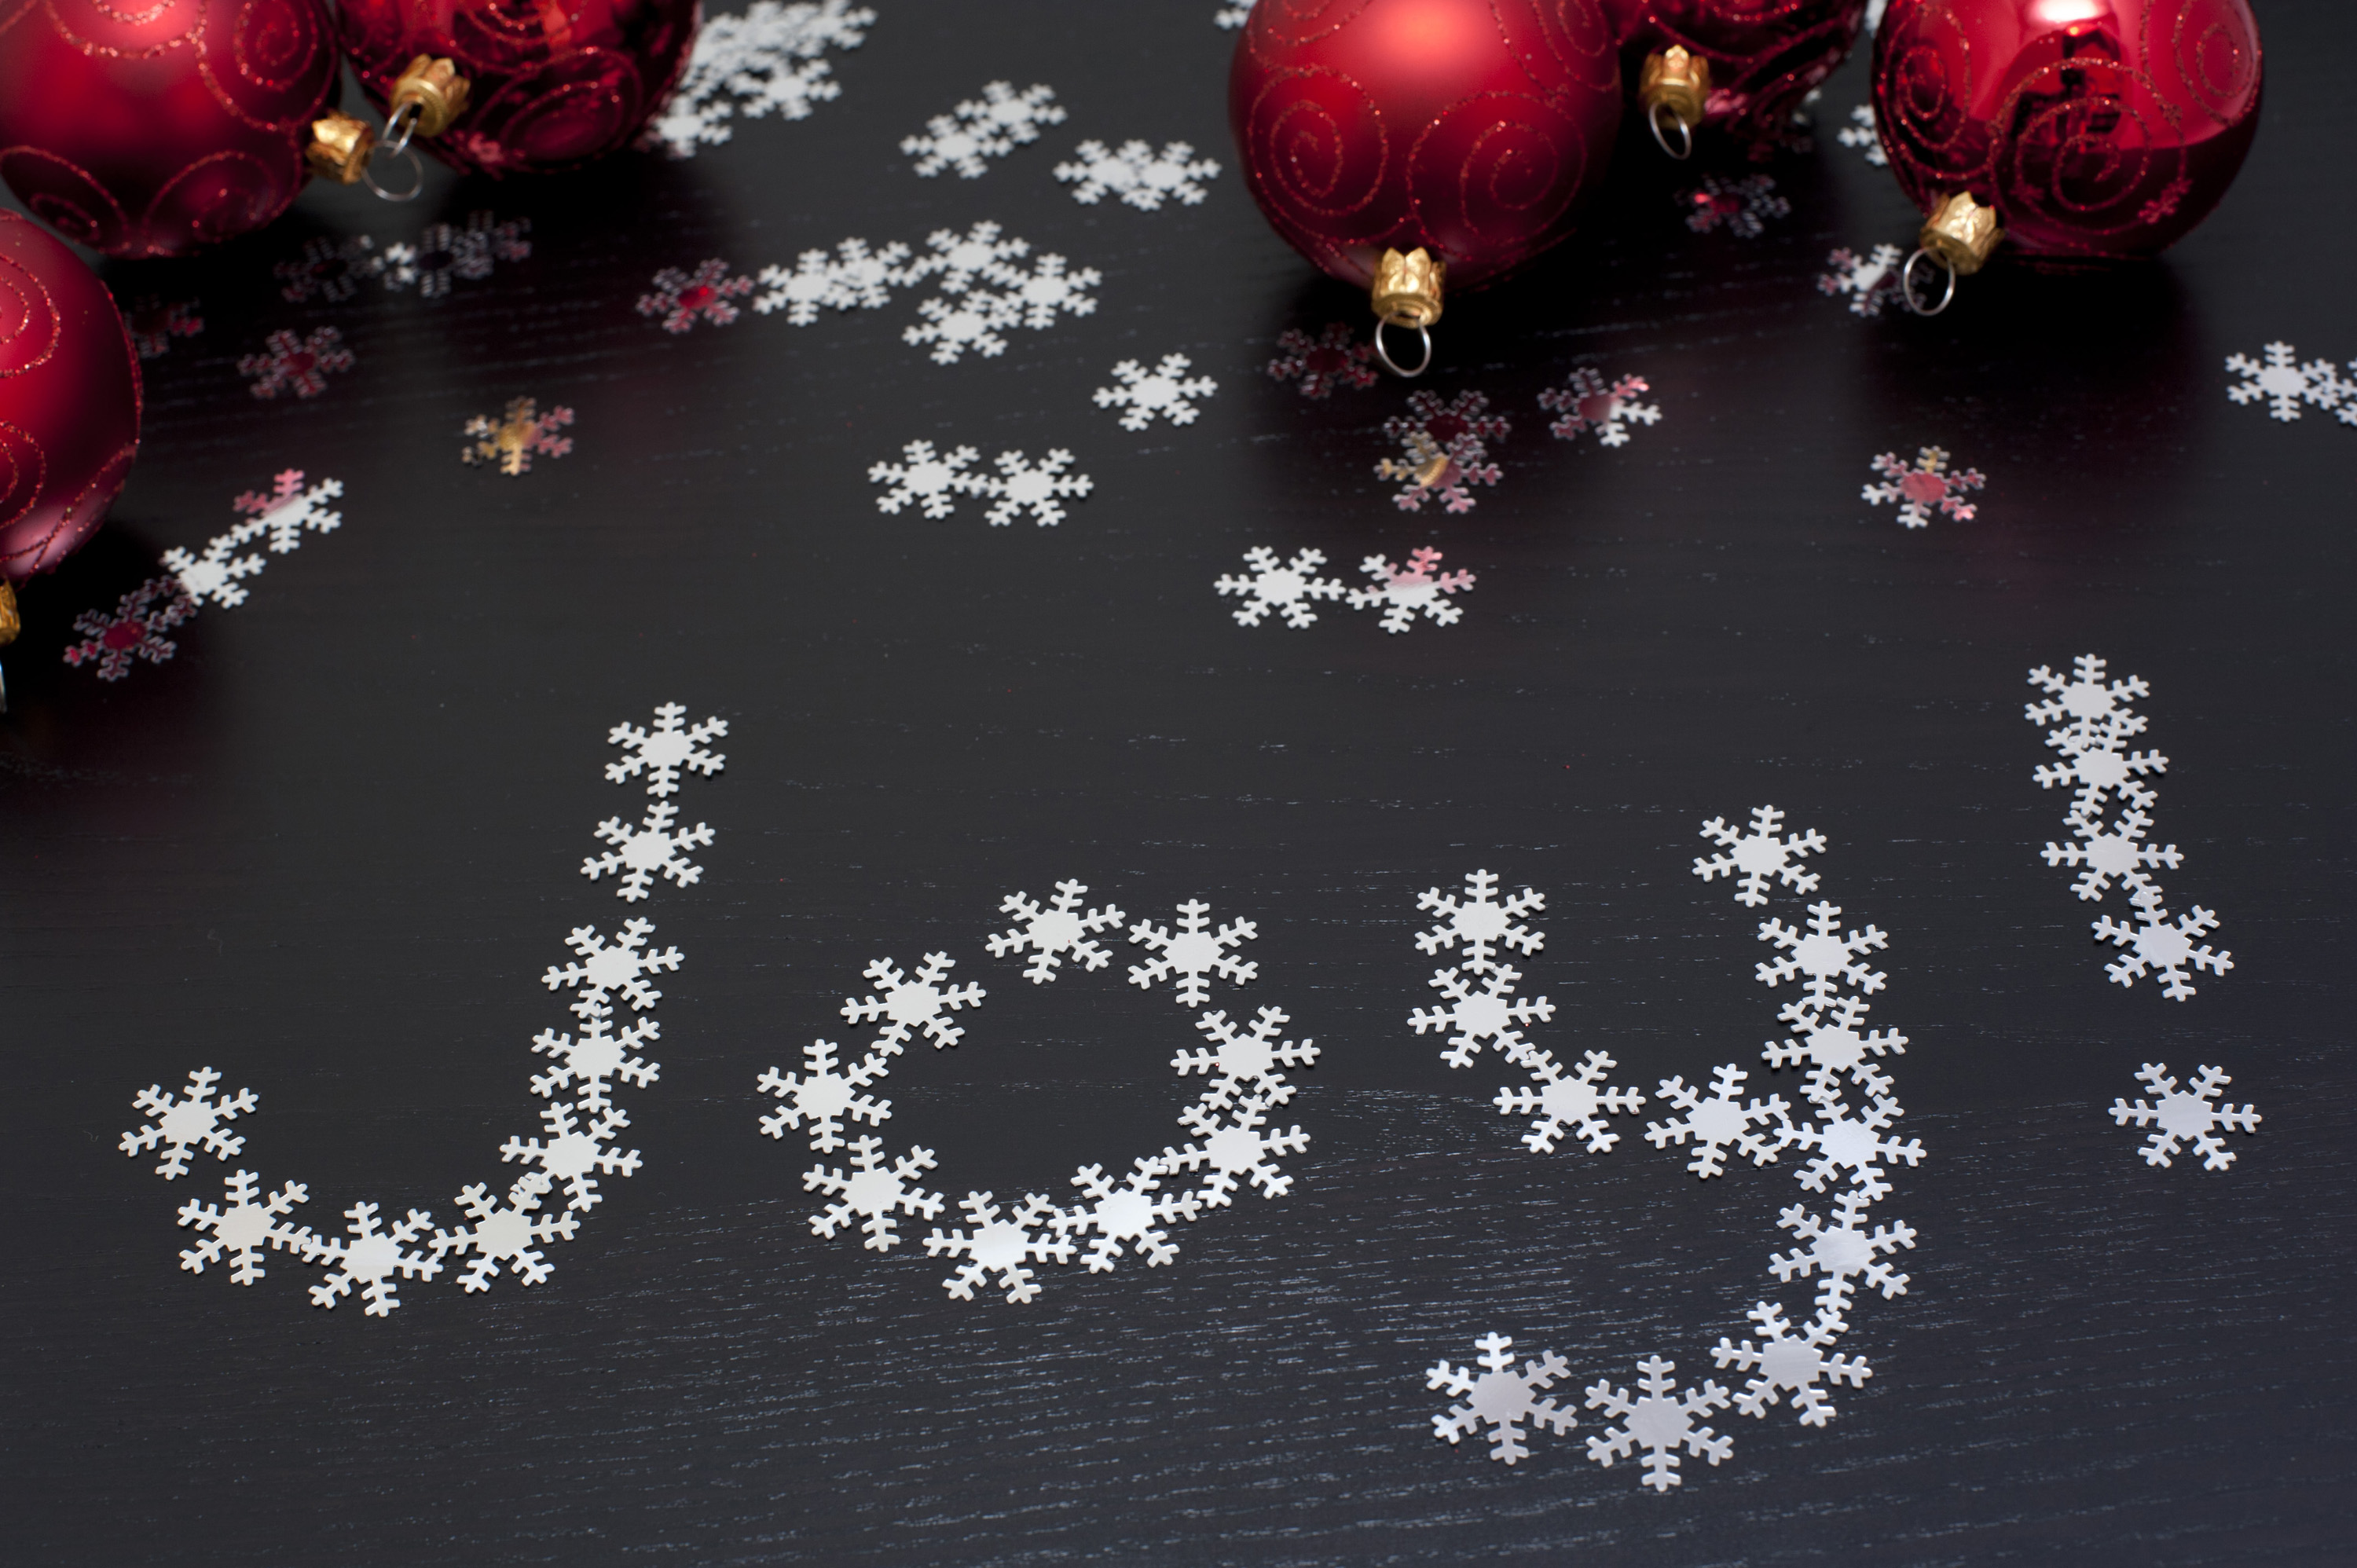 Joy to the world, a Christmas message with the word Joy formed of tiny snowflakes on a dark bqckground